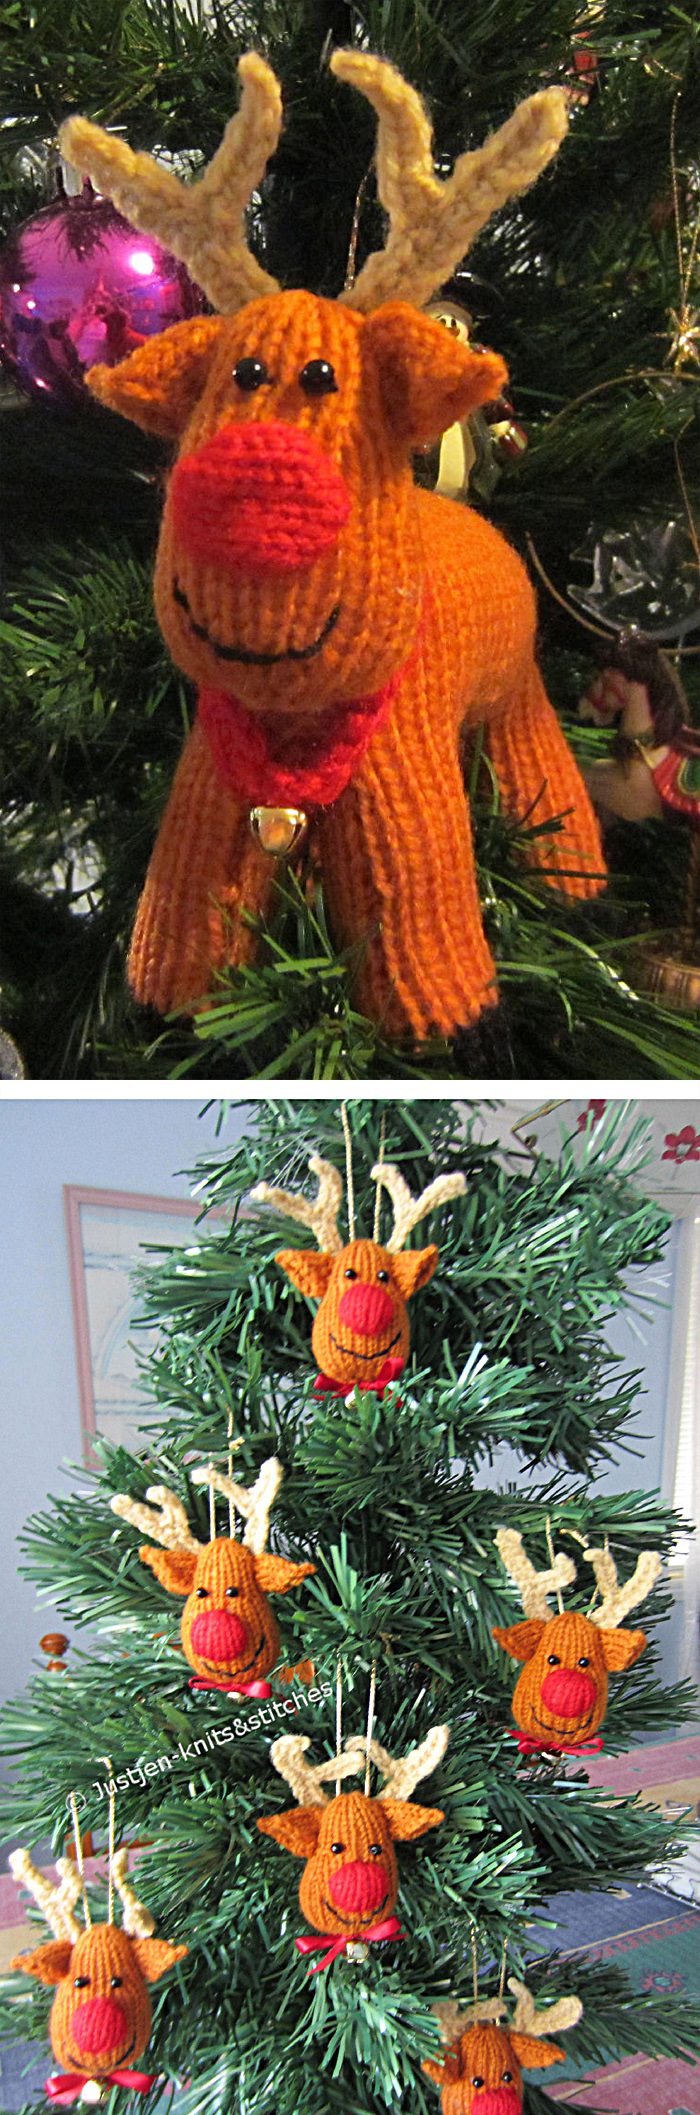 Free Knitting Pattern for Rex the Reindeer